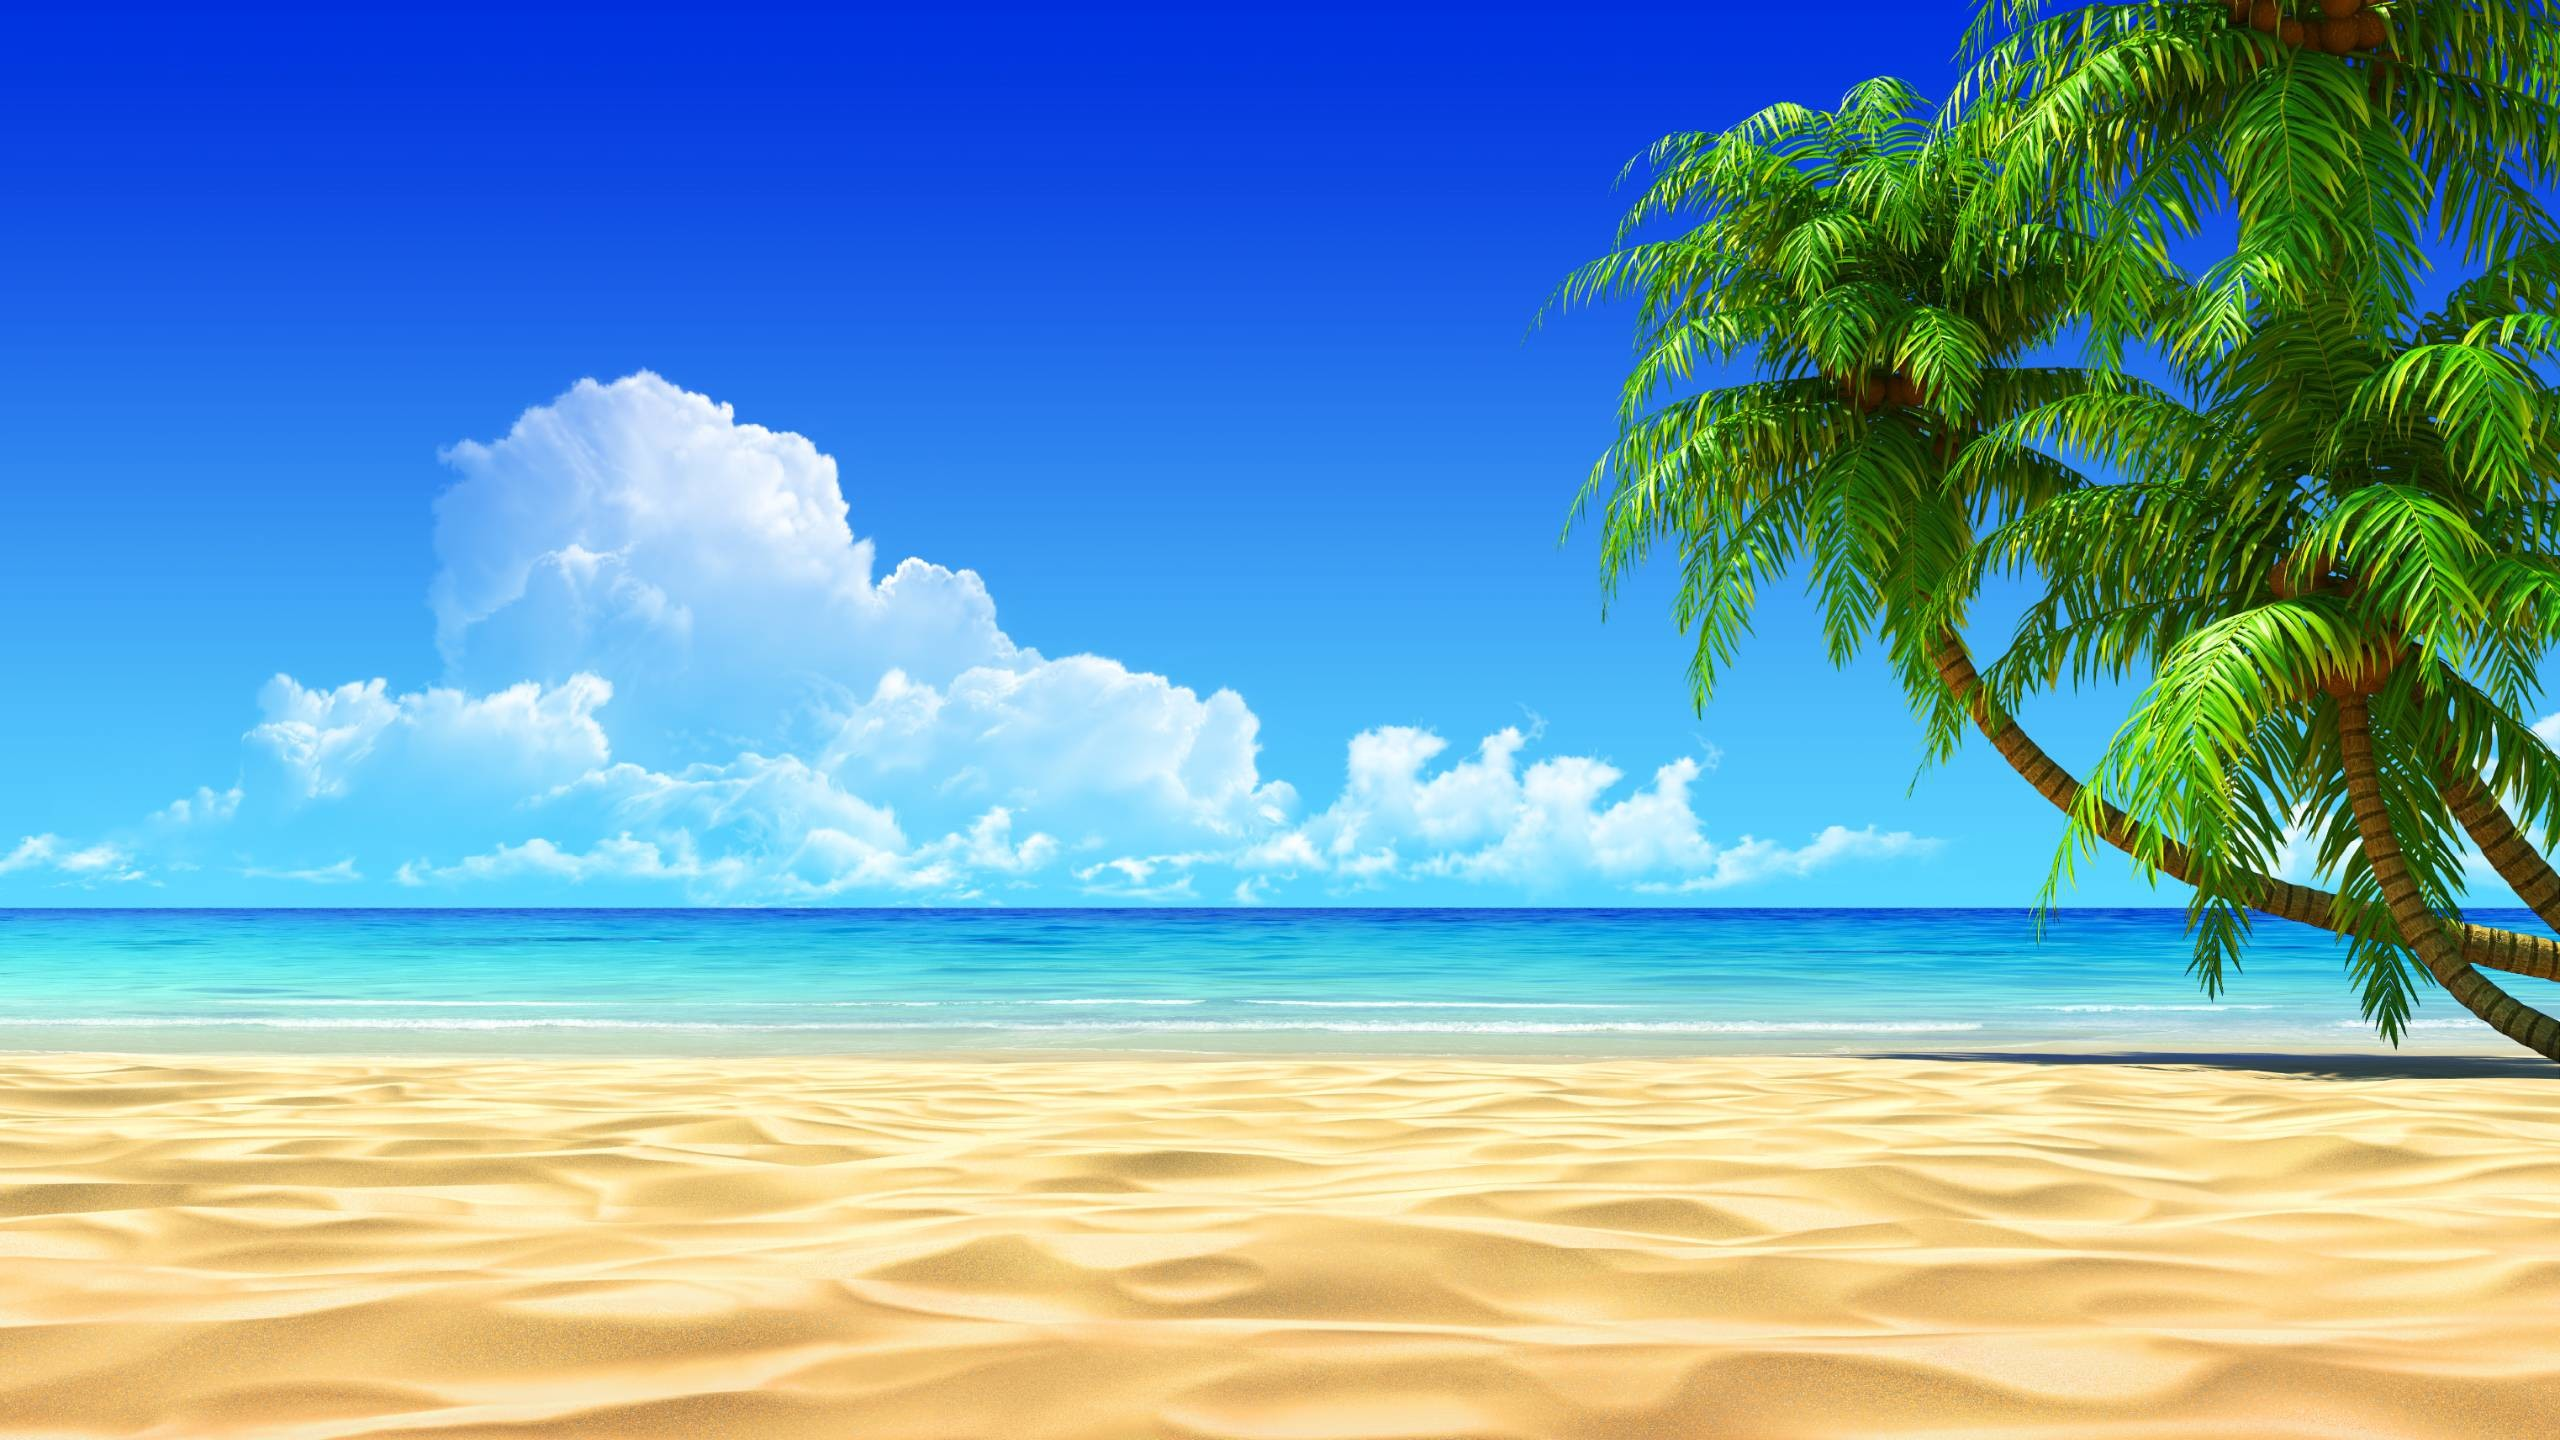 2560x1440 Tropical Beach Wallpapers Background